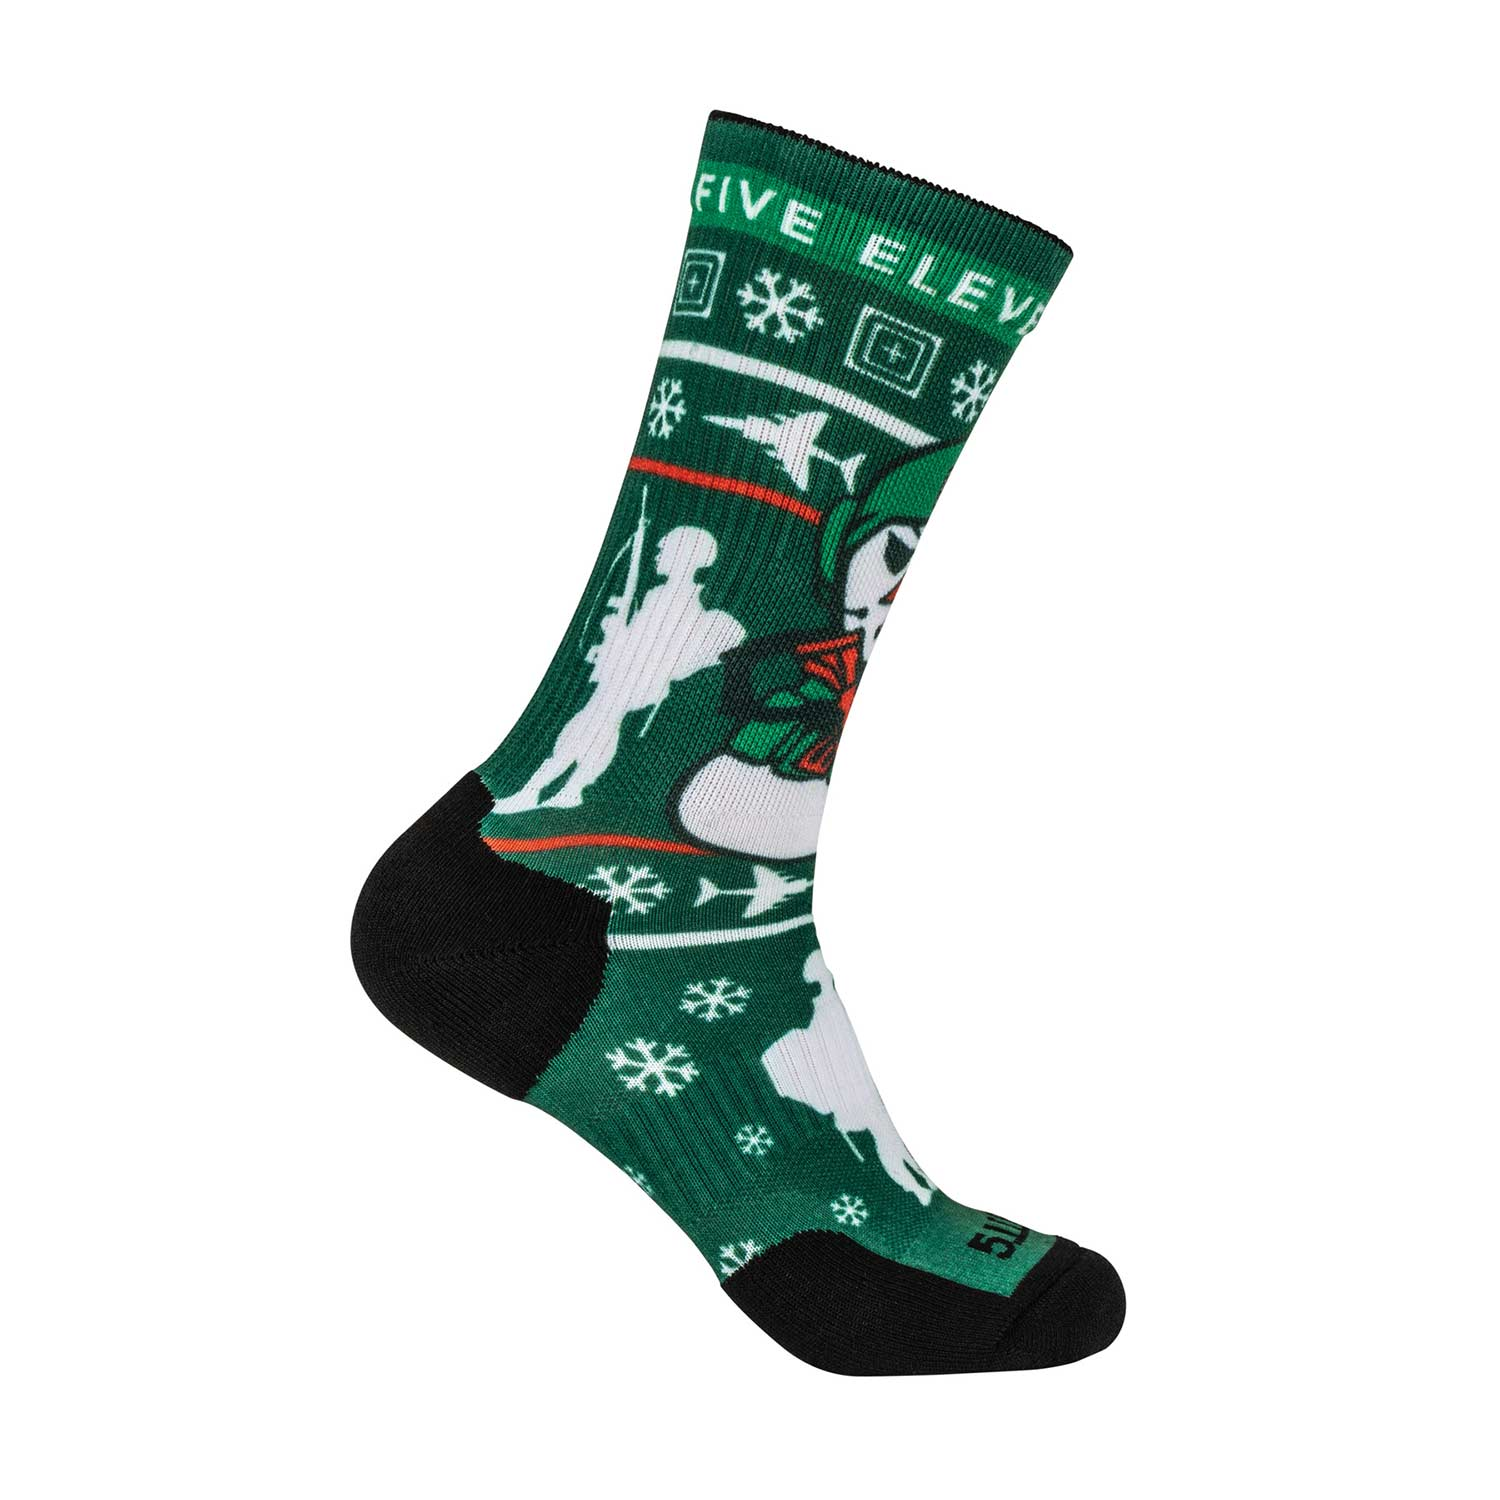 5.11 Sock and Awe Tactical Snowman Crew Sock